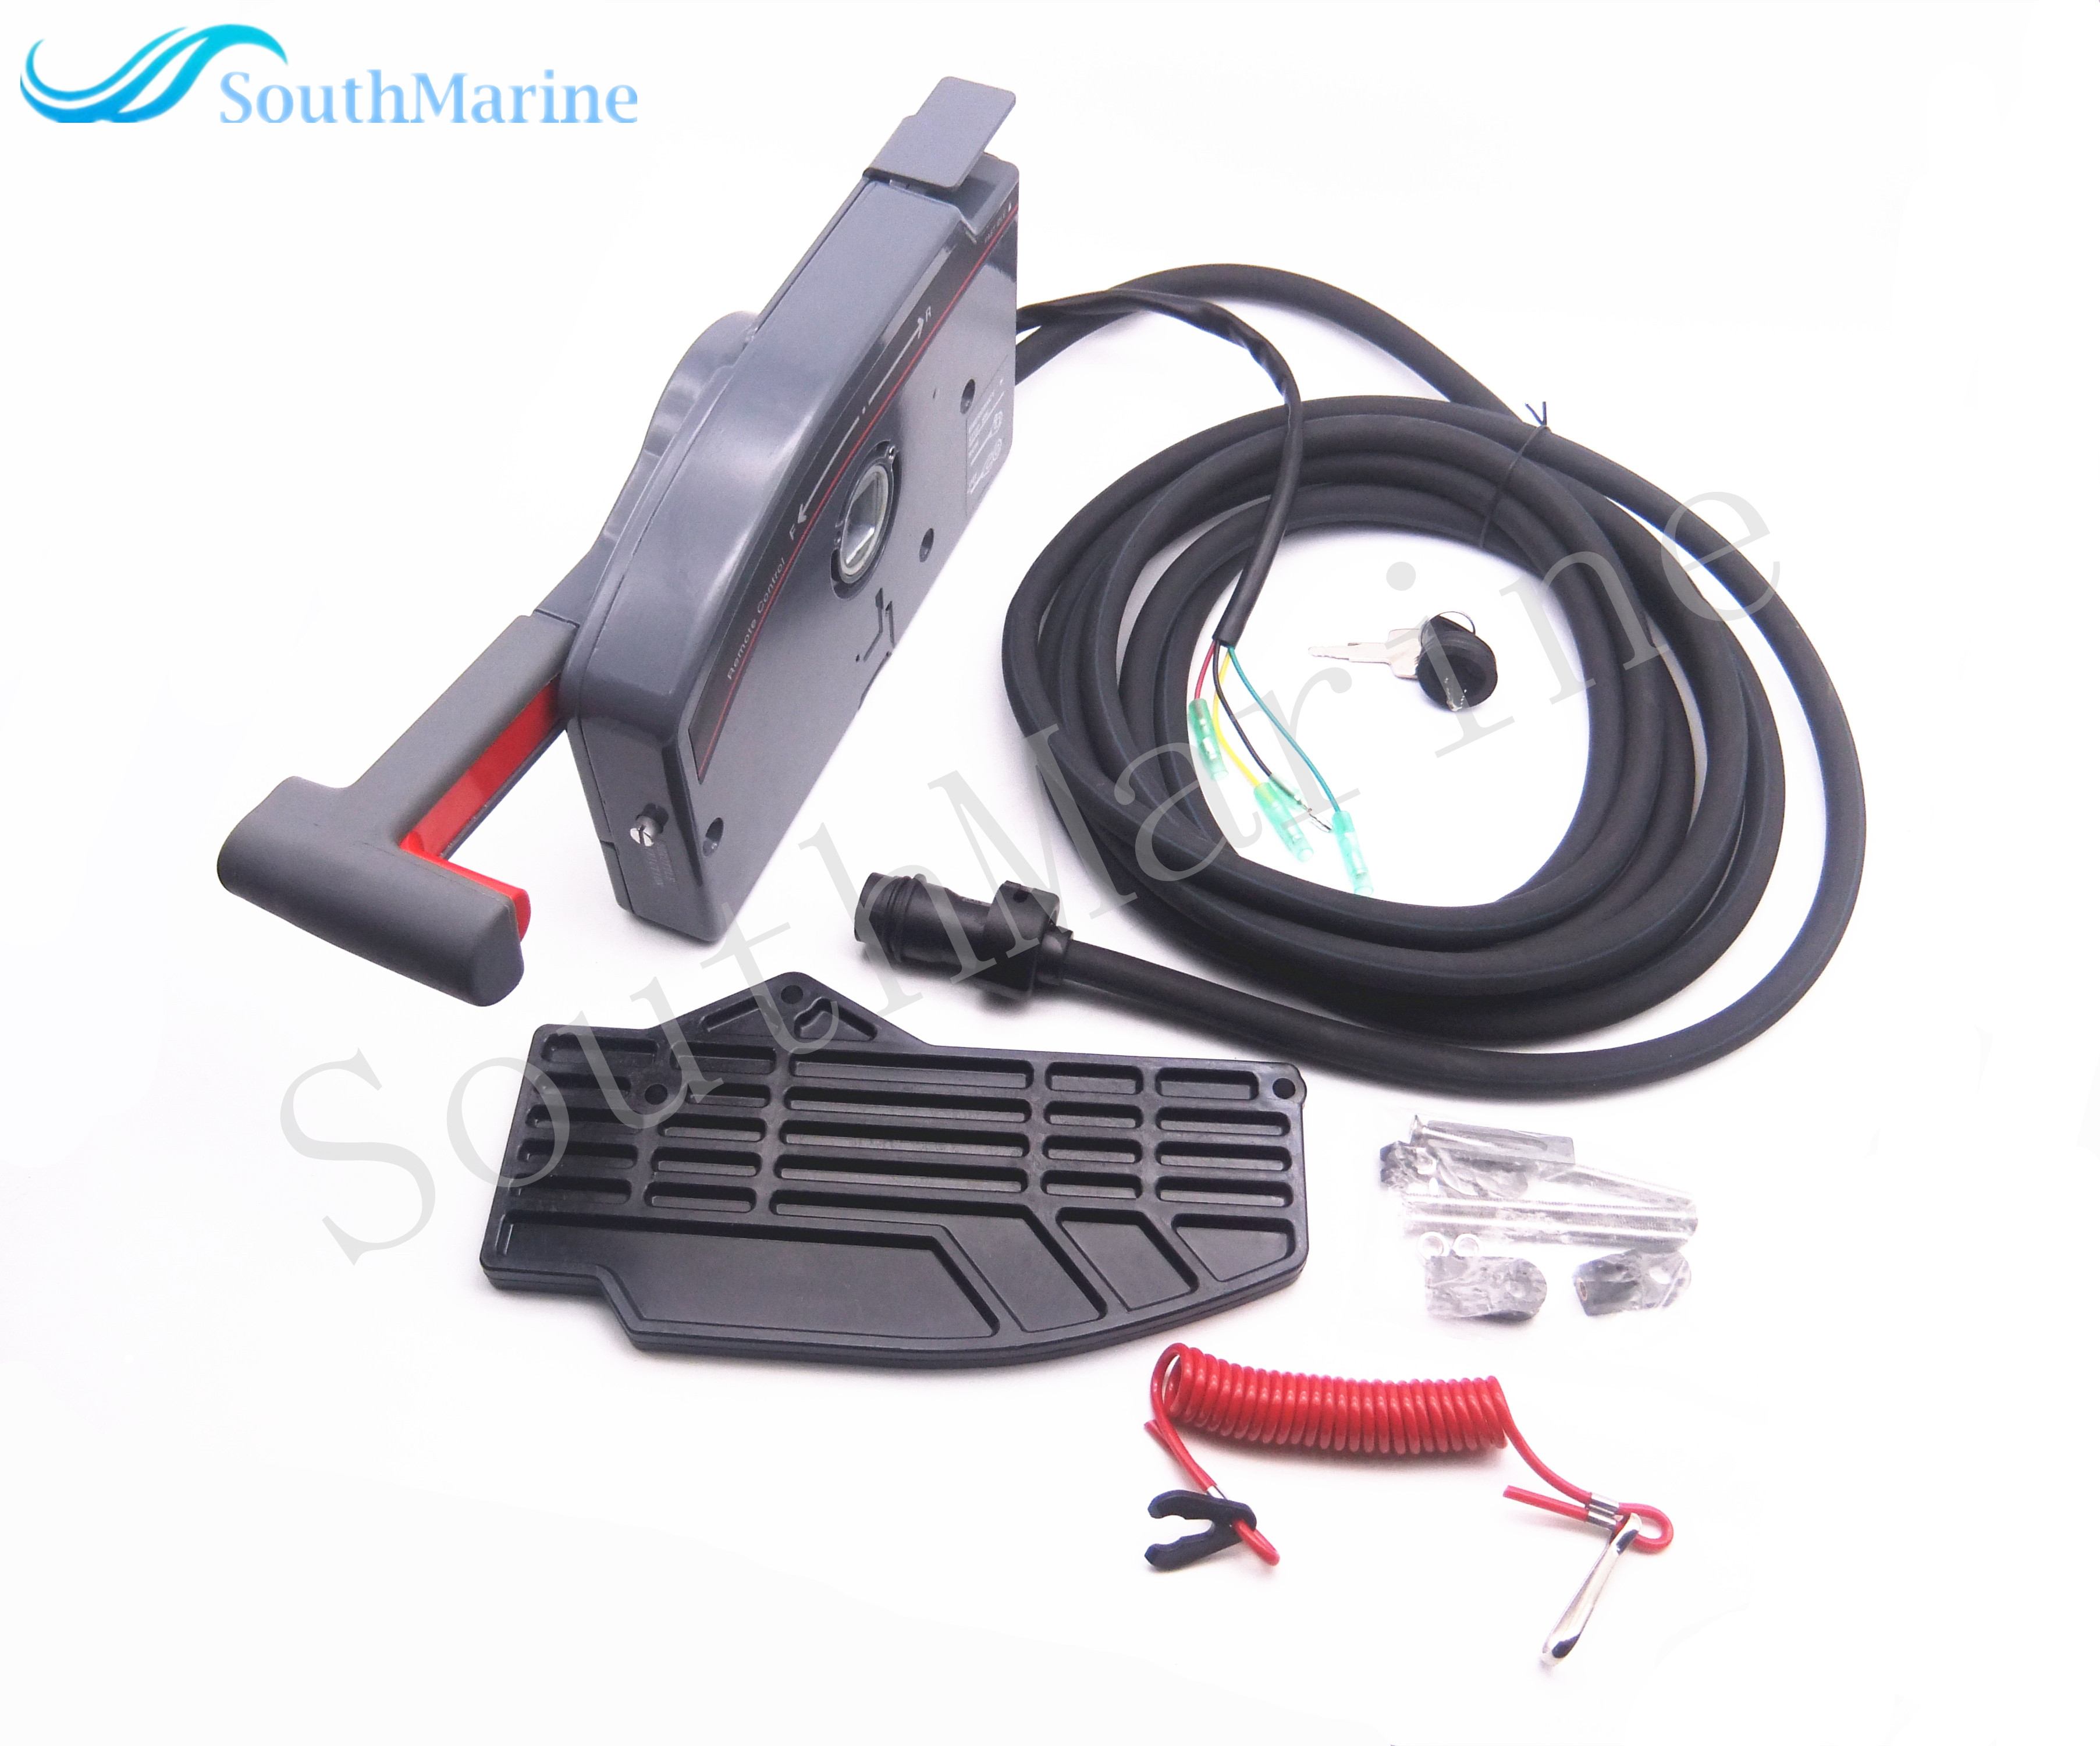 Outboard Remote Control Box For Yamaha 703 Boat Motor 703 48205 15 00 703 48207 11 00 703 48205 14 00 , 10 Pins, LEFT HAND